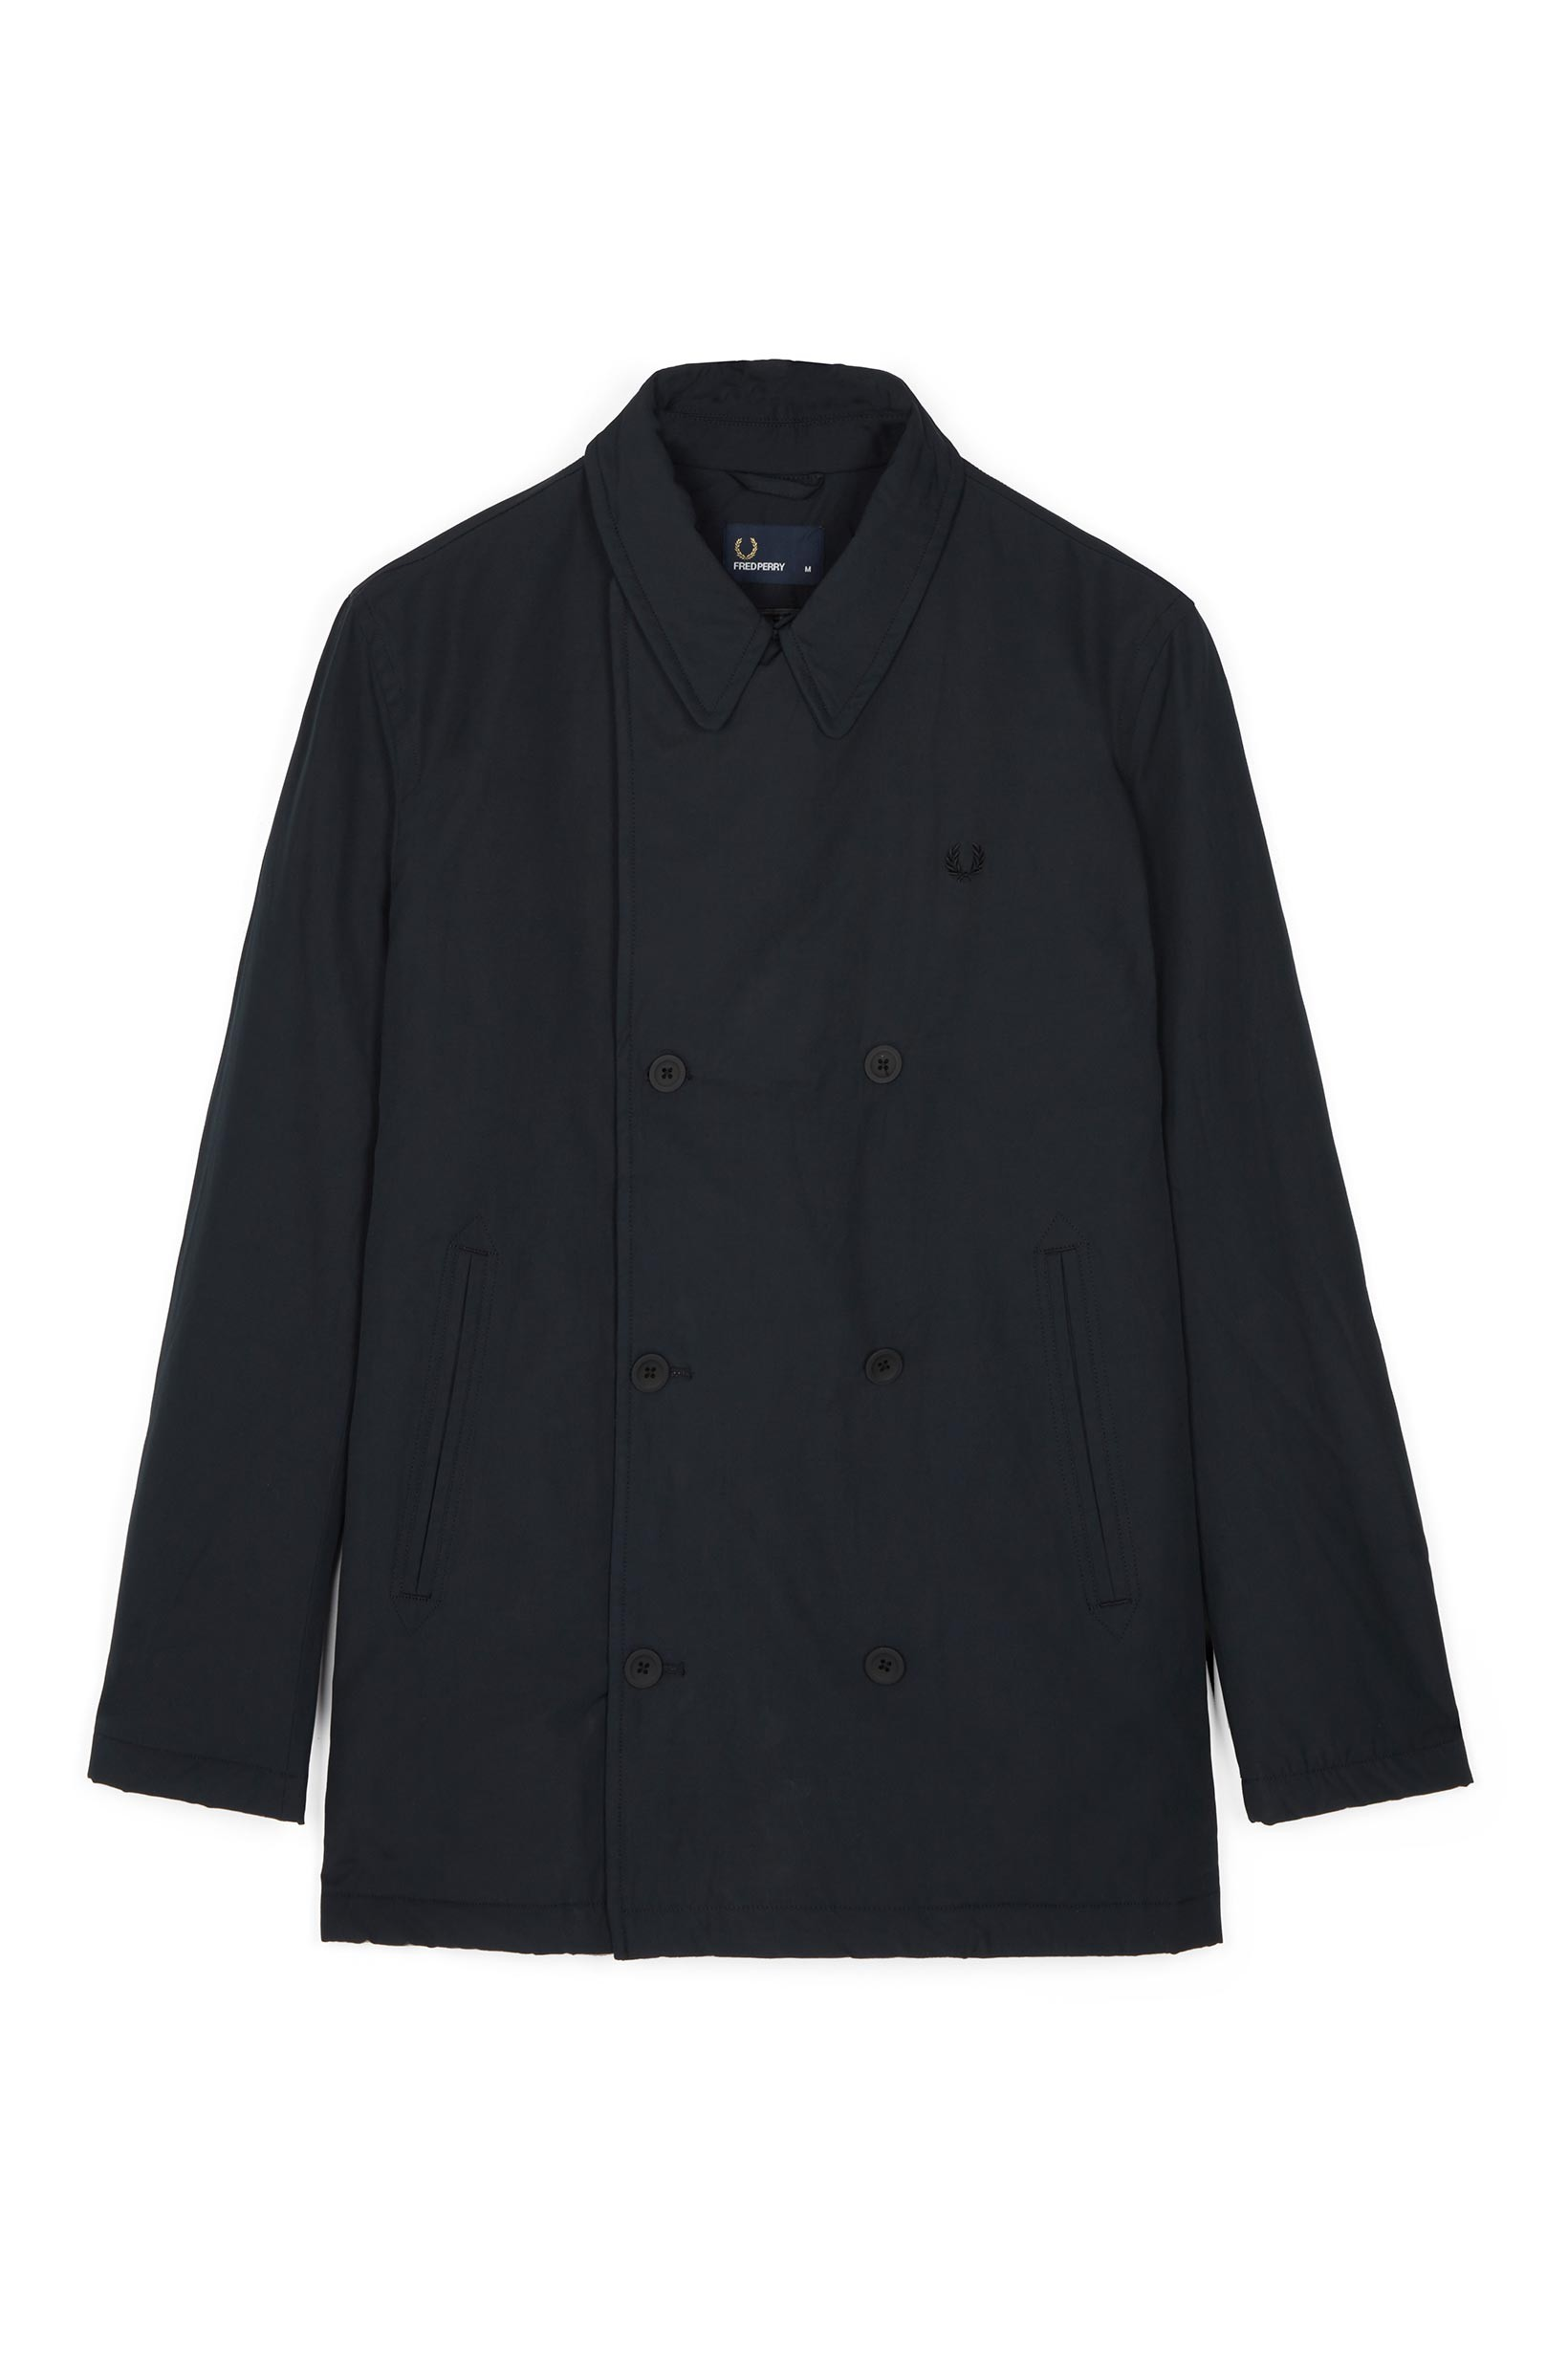 Fred Perry Black Quilted Pea Coat